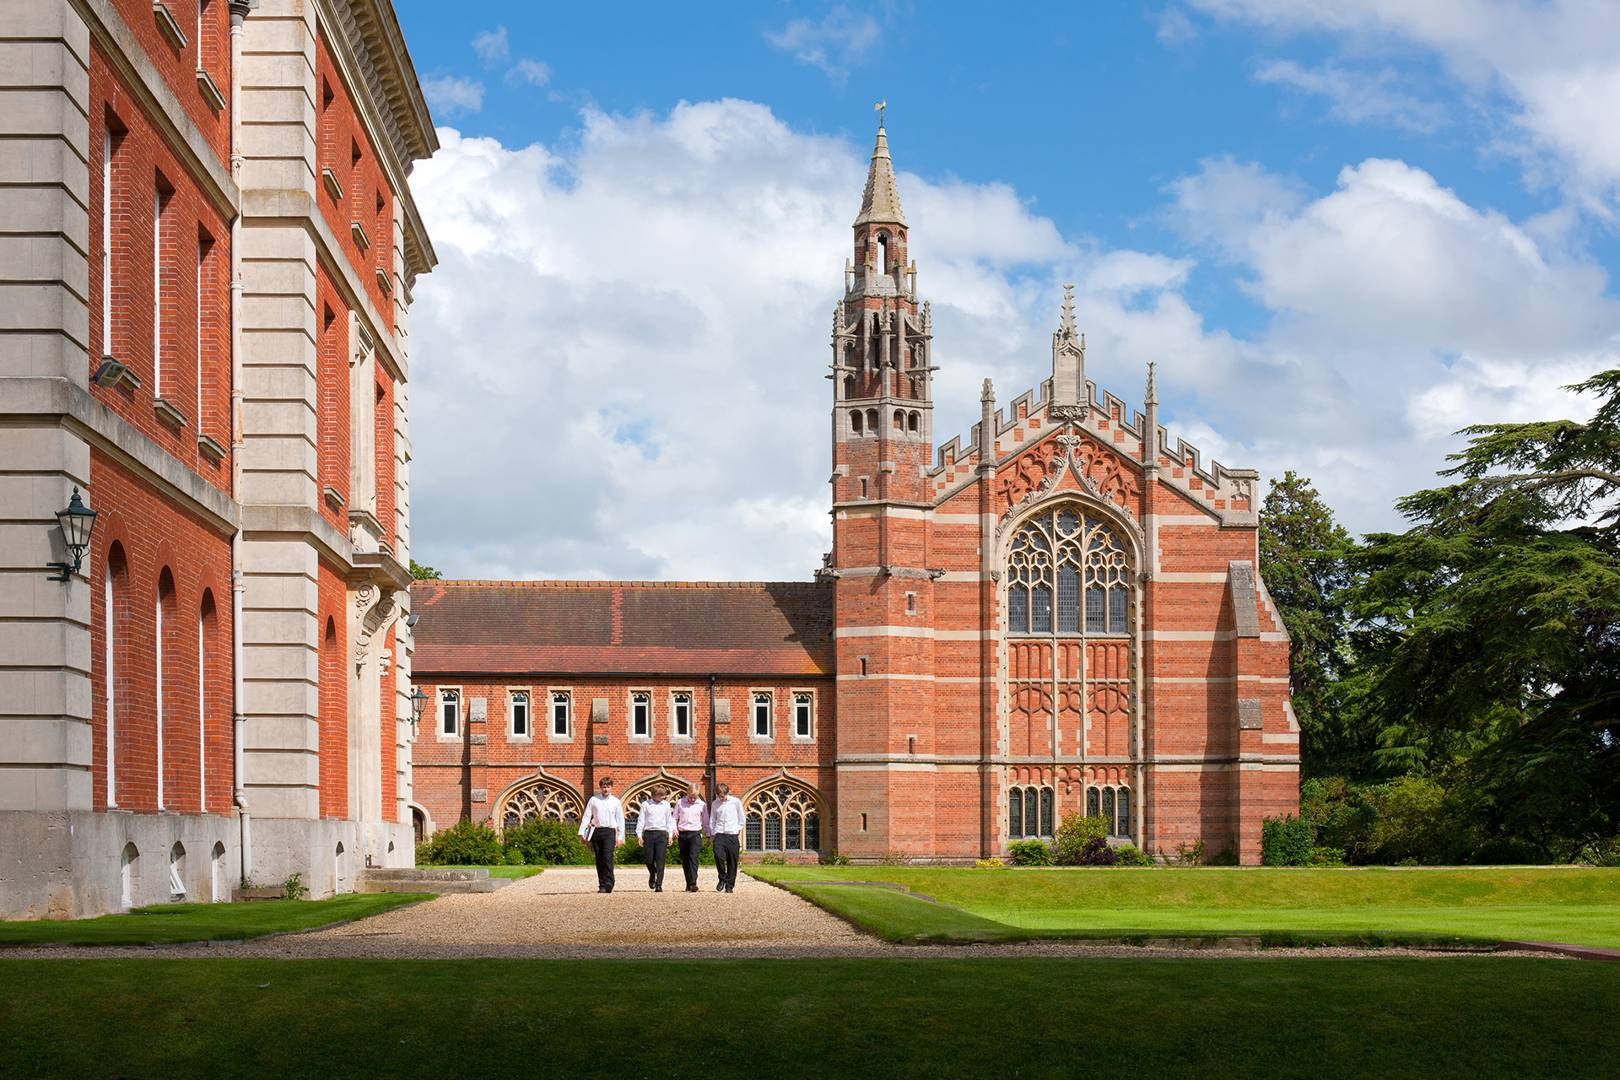 Radley College Oxfordshire